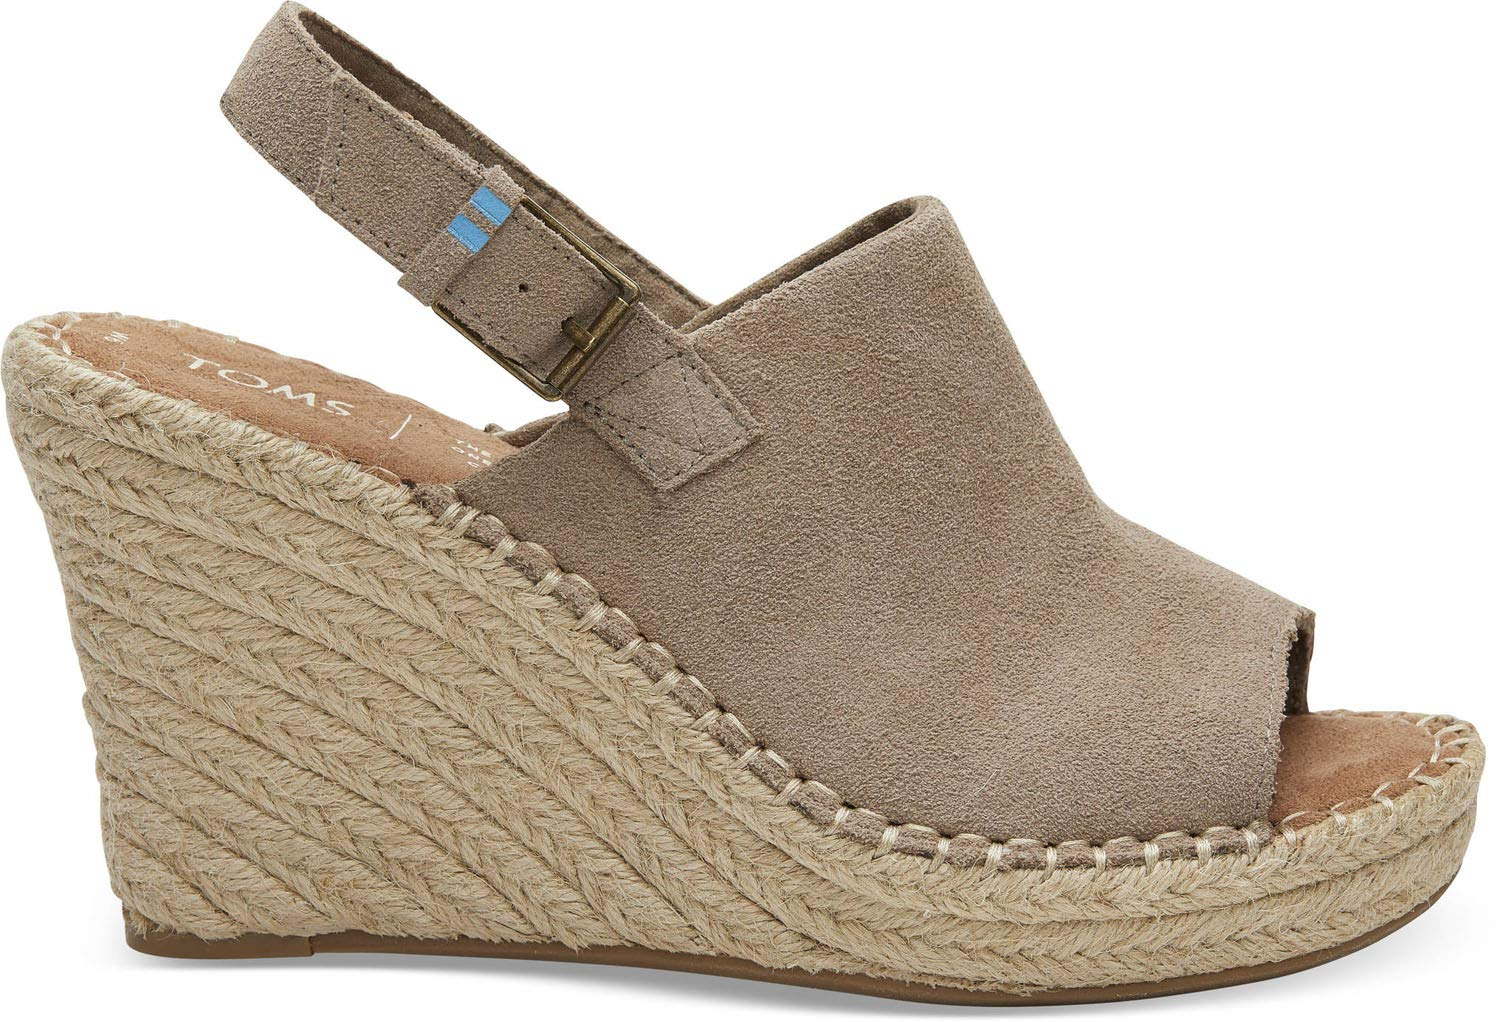 TOMS Women's Monica Wedge, Size: 5 B(M) US, Color: Desert Taupe Suede